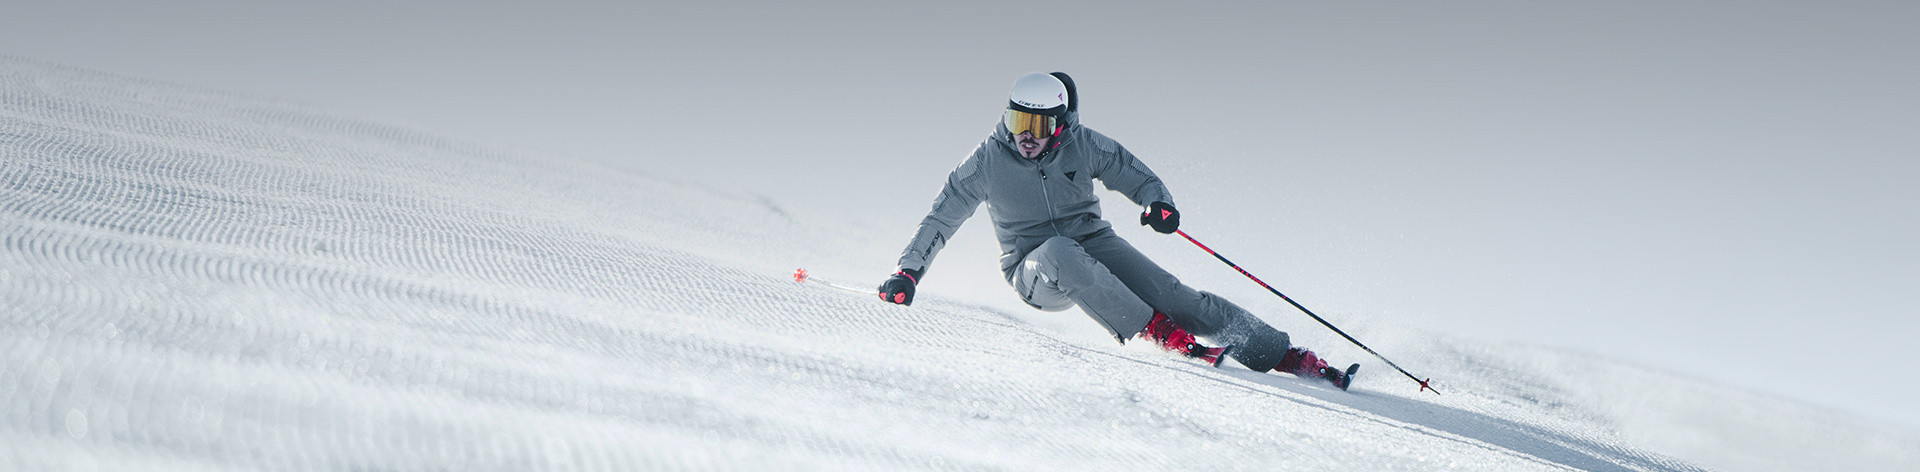 Dainese Winter Sports Outfits